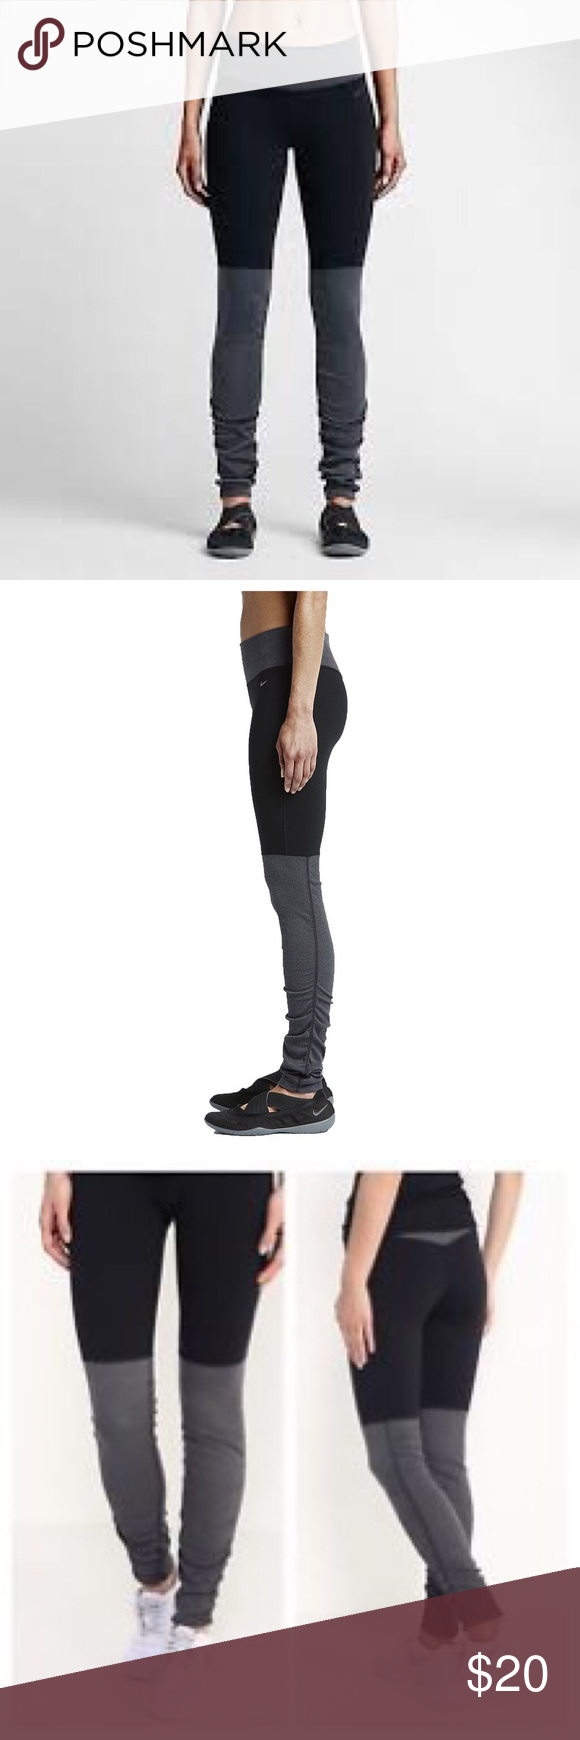 ca85d850cd Nike Women's Legendary Ribbed Training Tights Preowned. Excellent  condition. Nike Pants Leggings